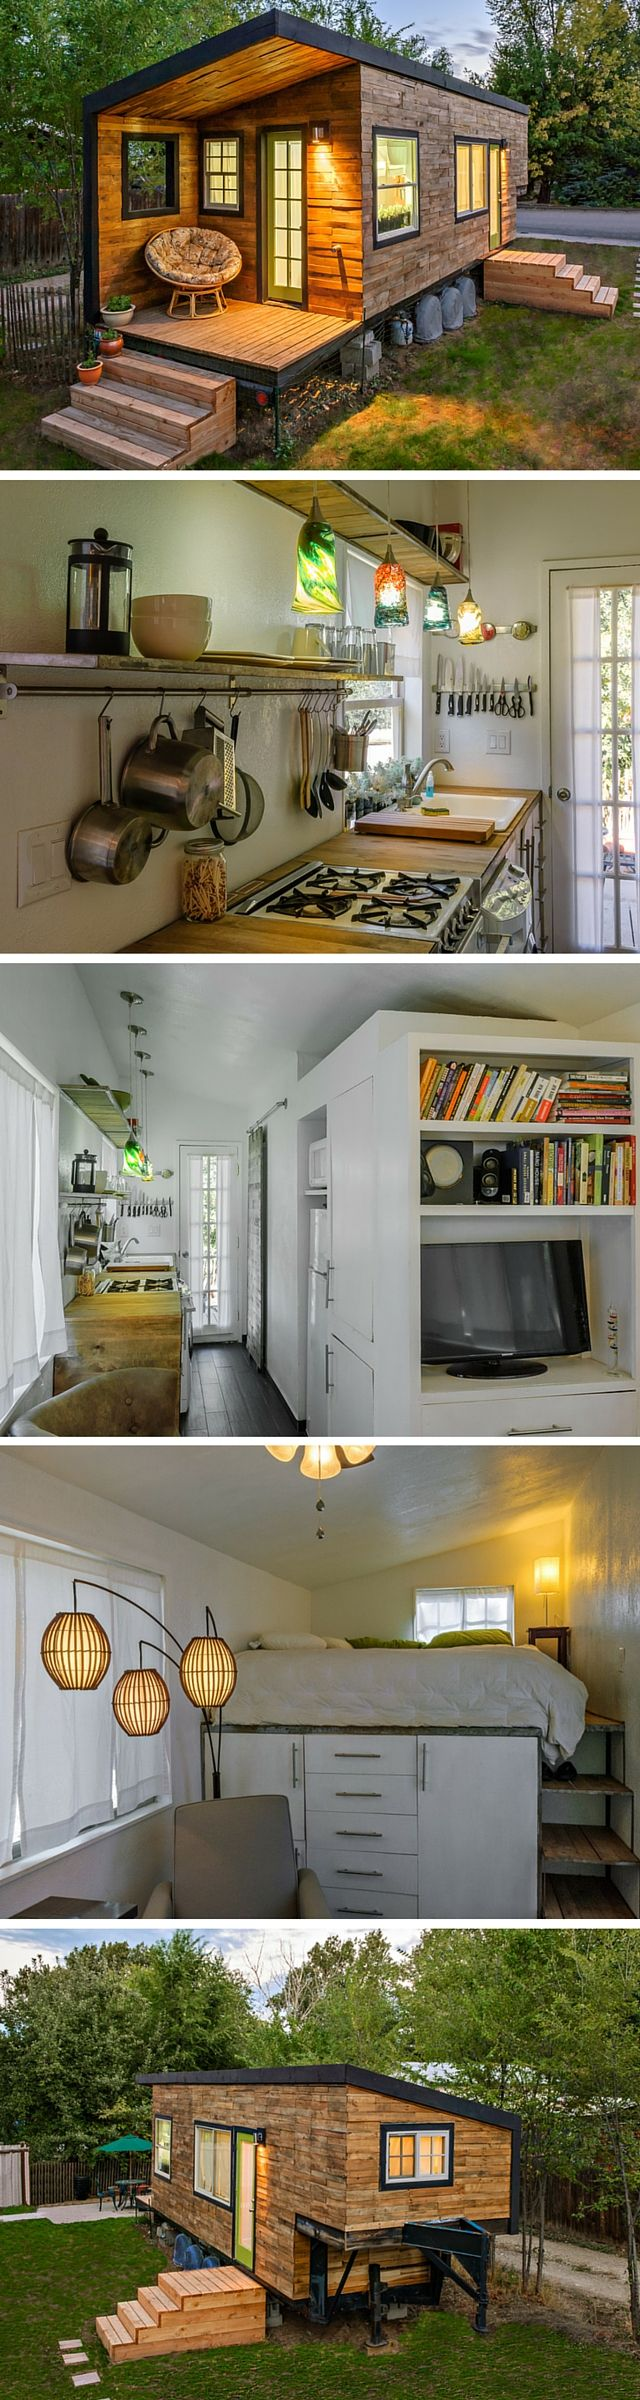 Mini Motives A 196 Sq Ft Home Shared By A Family Of Four Modern